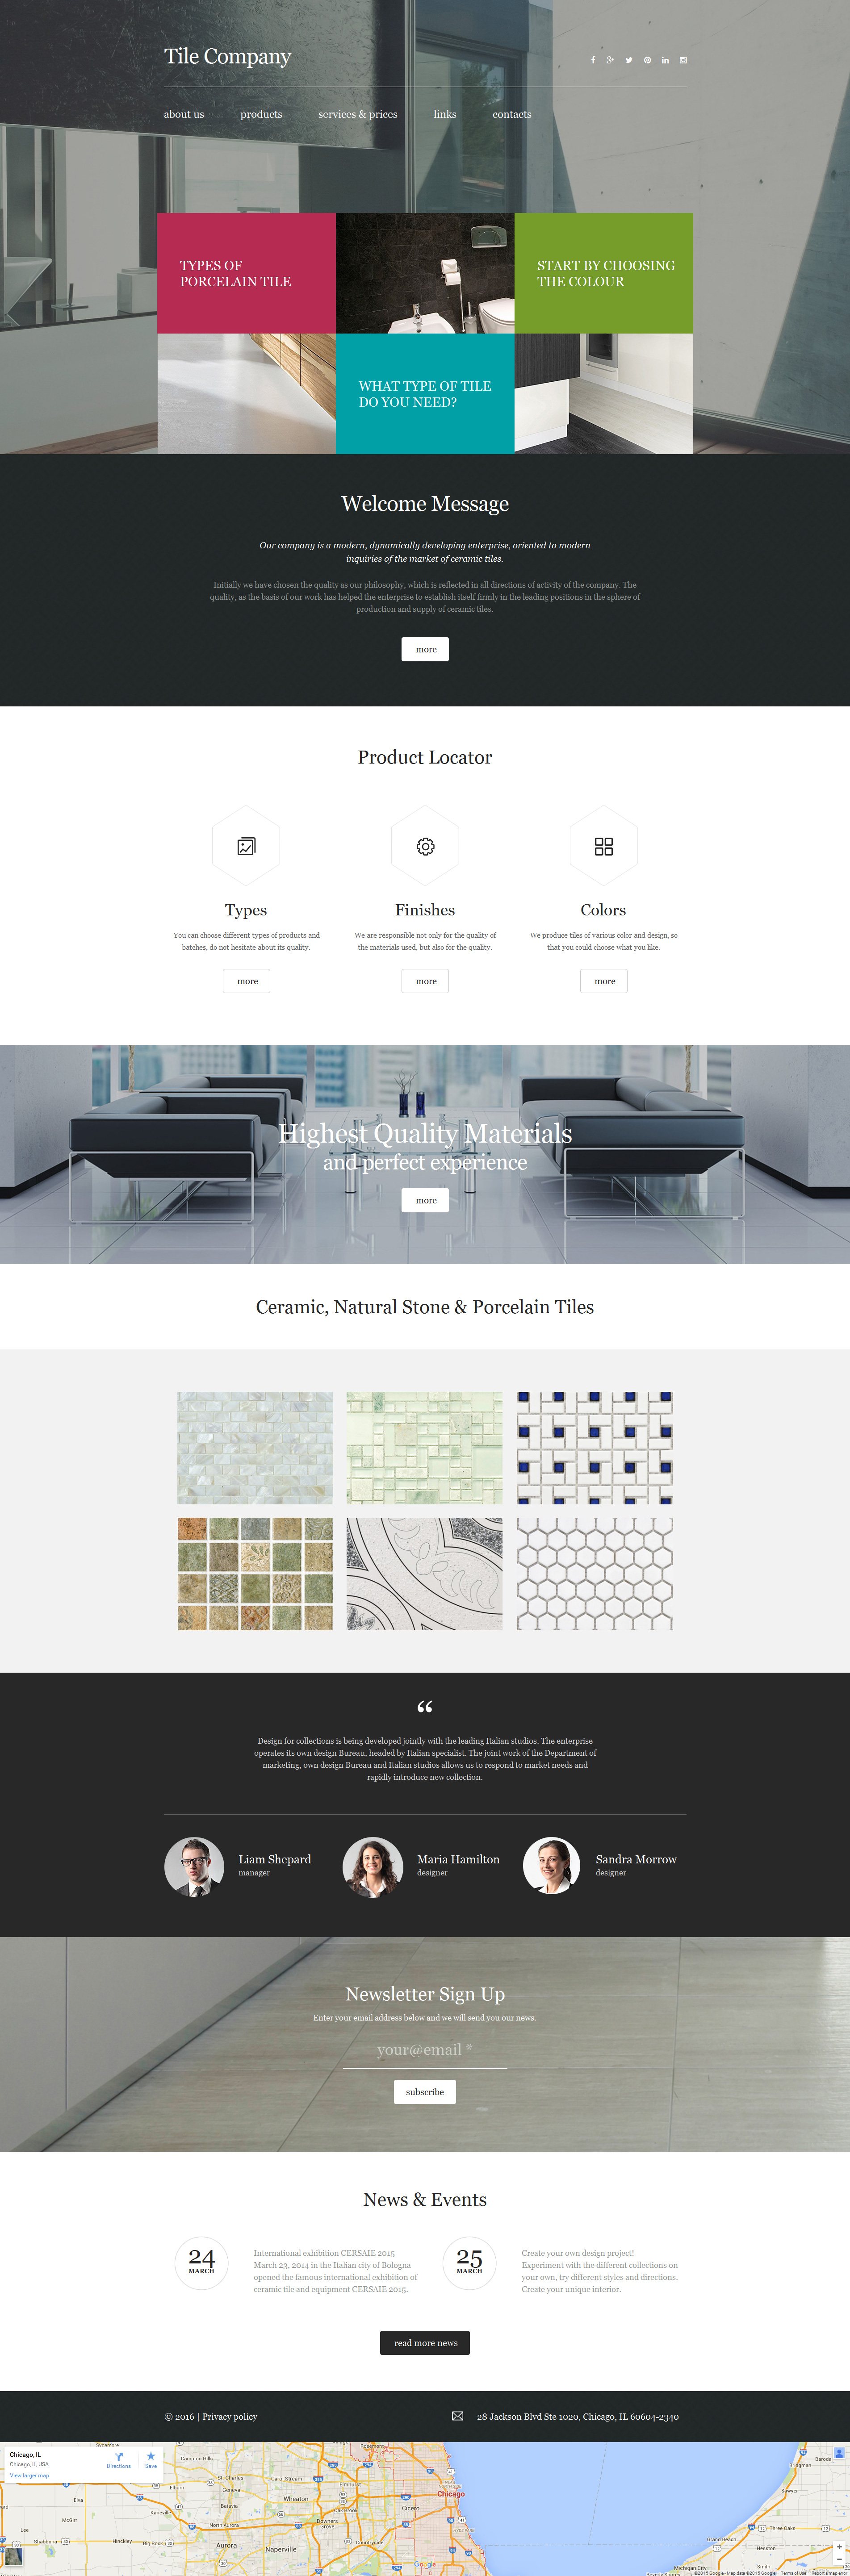 Interior Design Moto CMS 3 Template